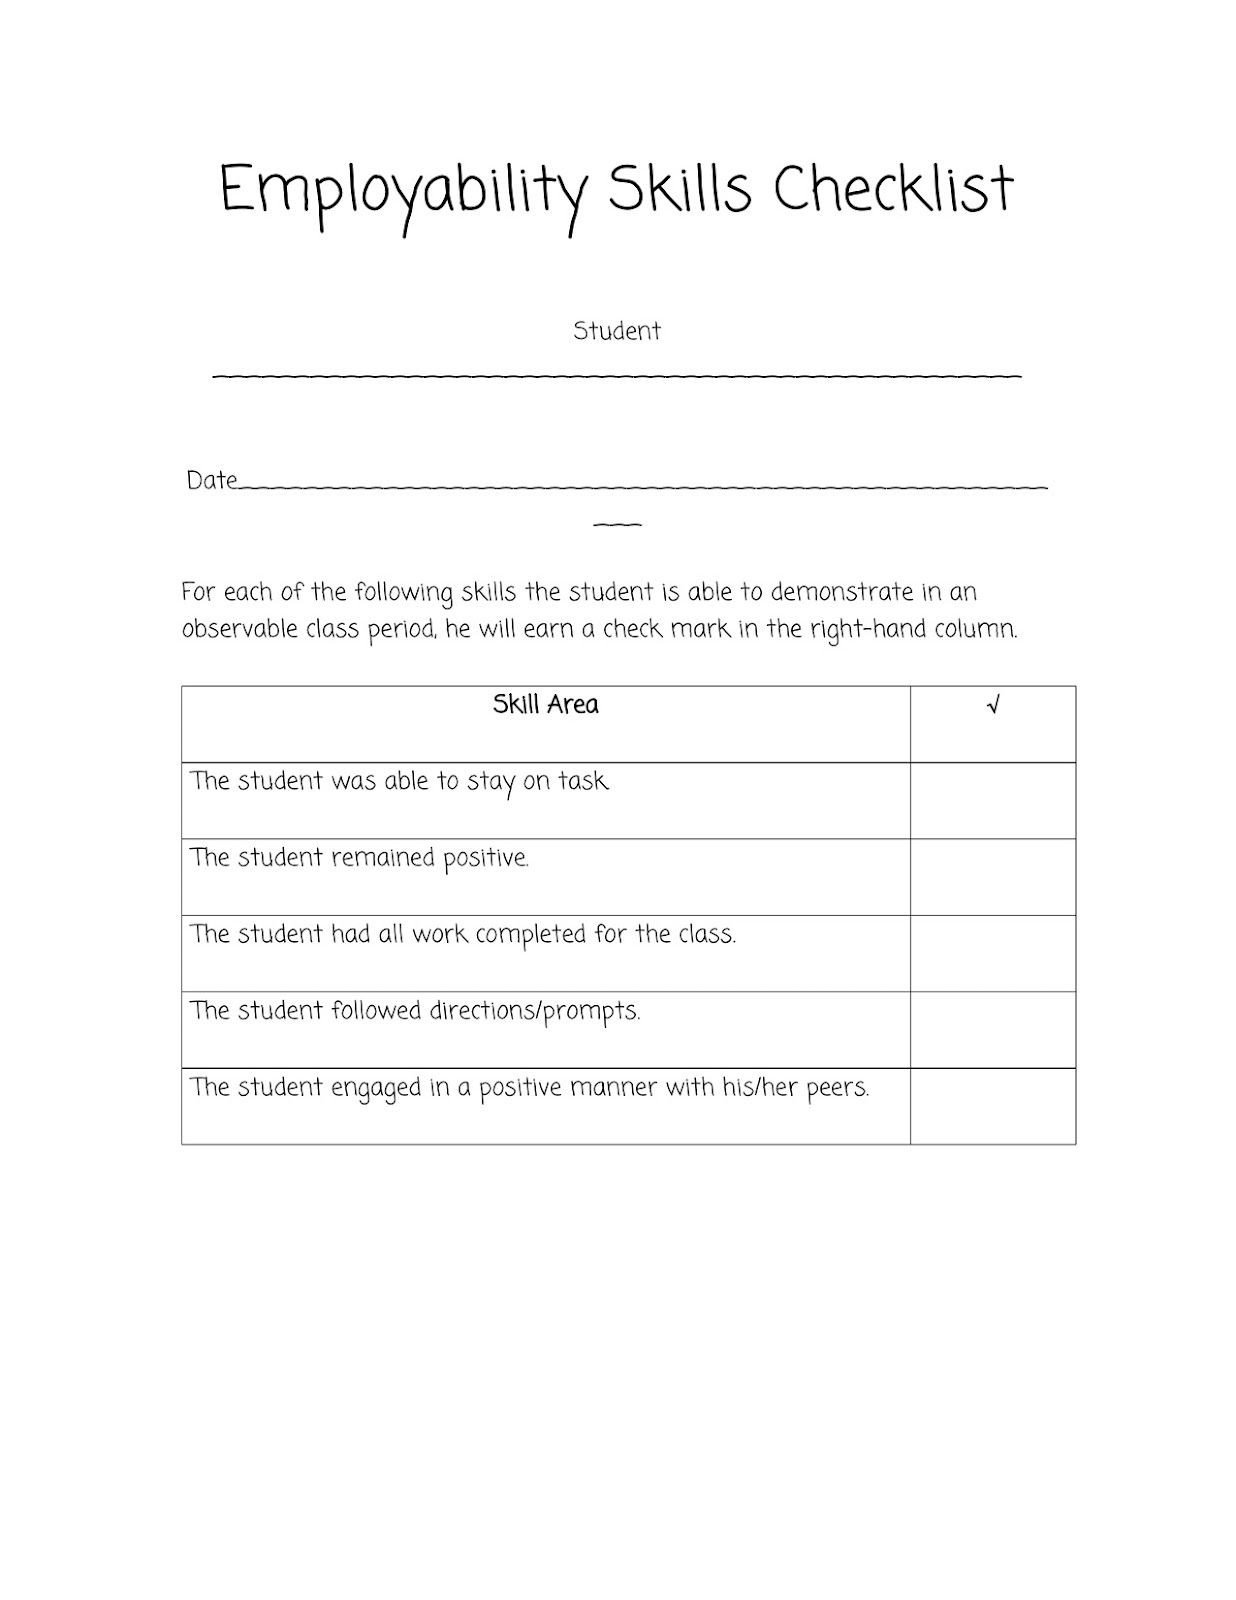 Job Readiness Printable Worksheets Sped Head Employability Skills Checklist Worksheets for